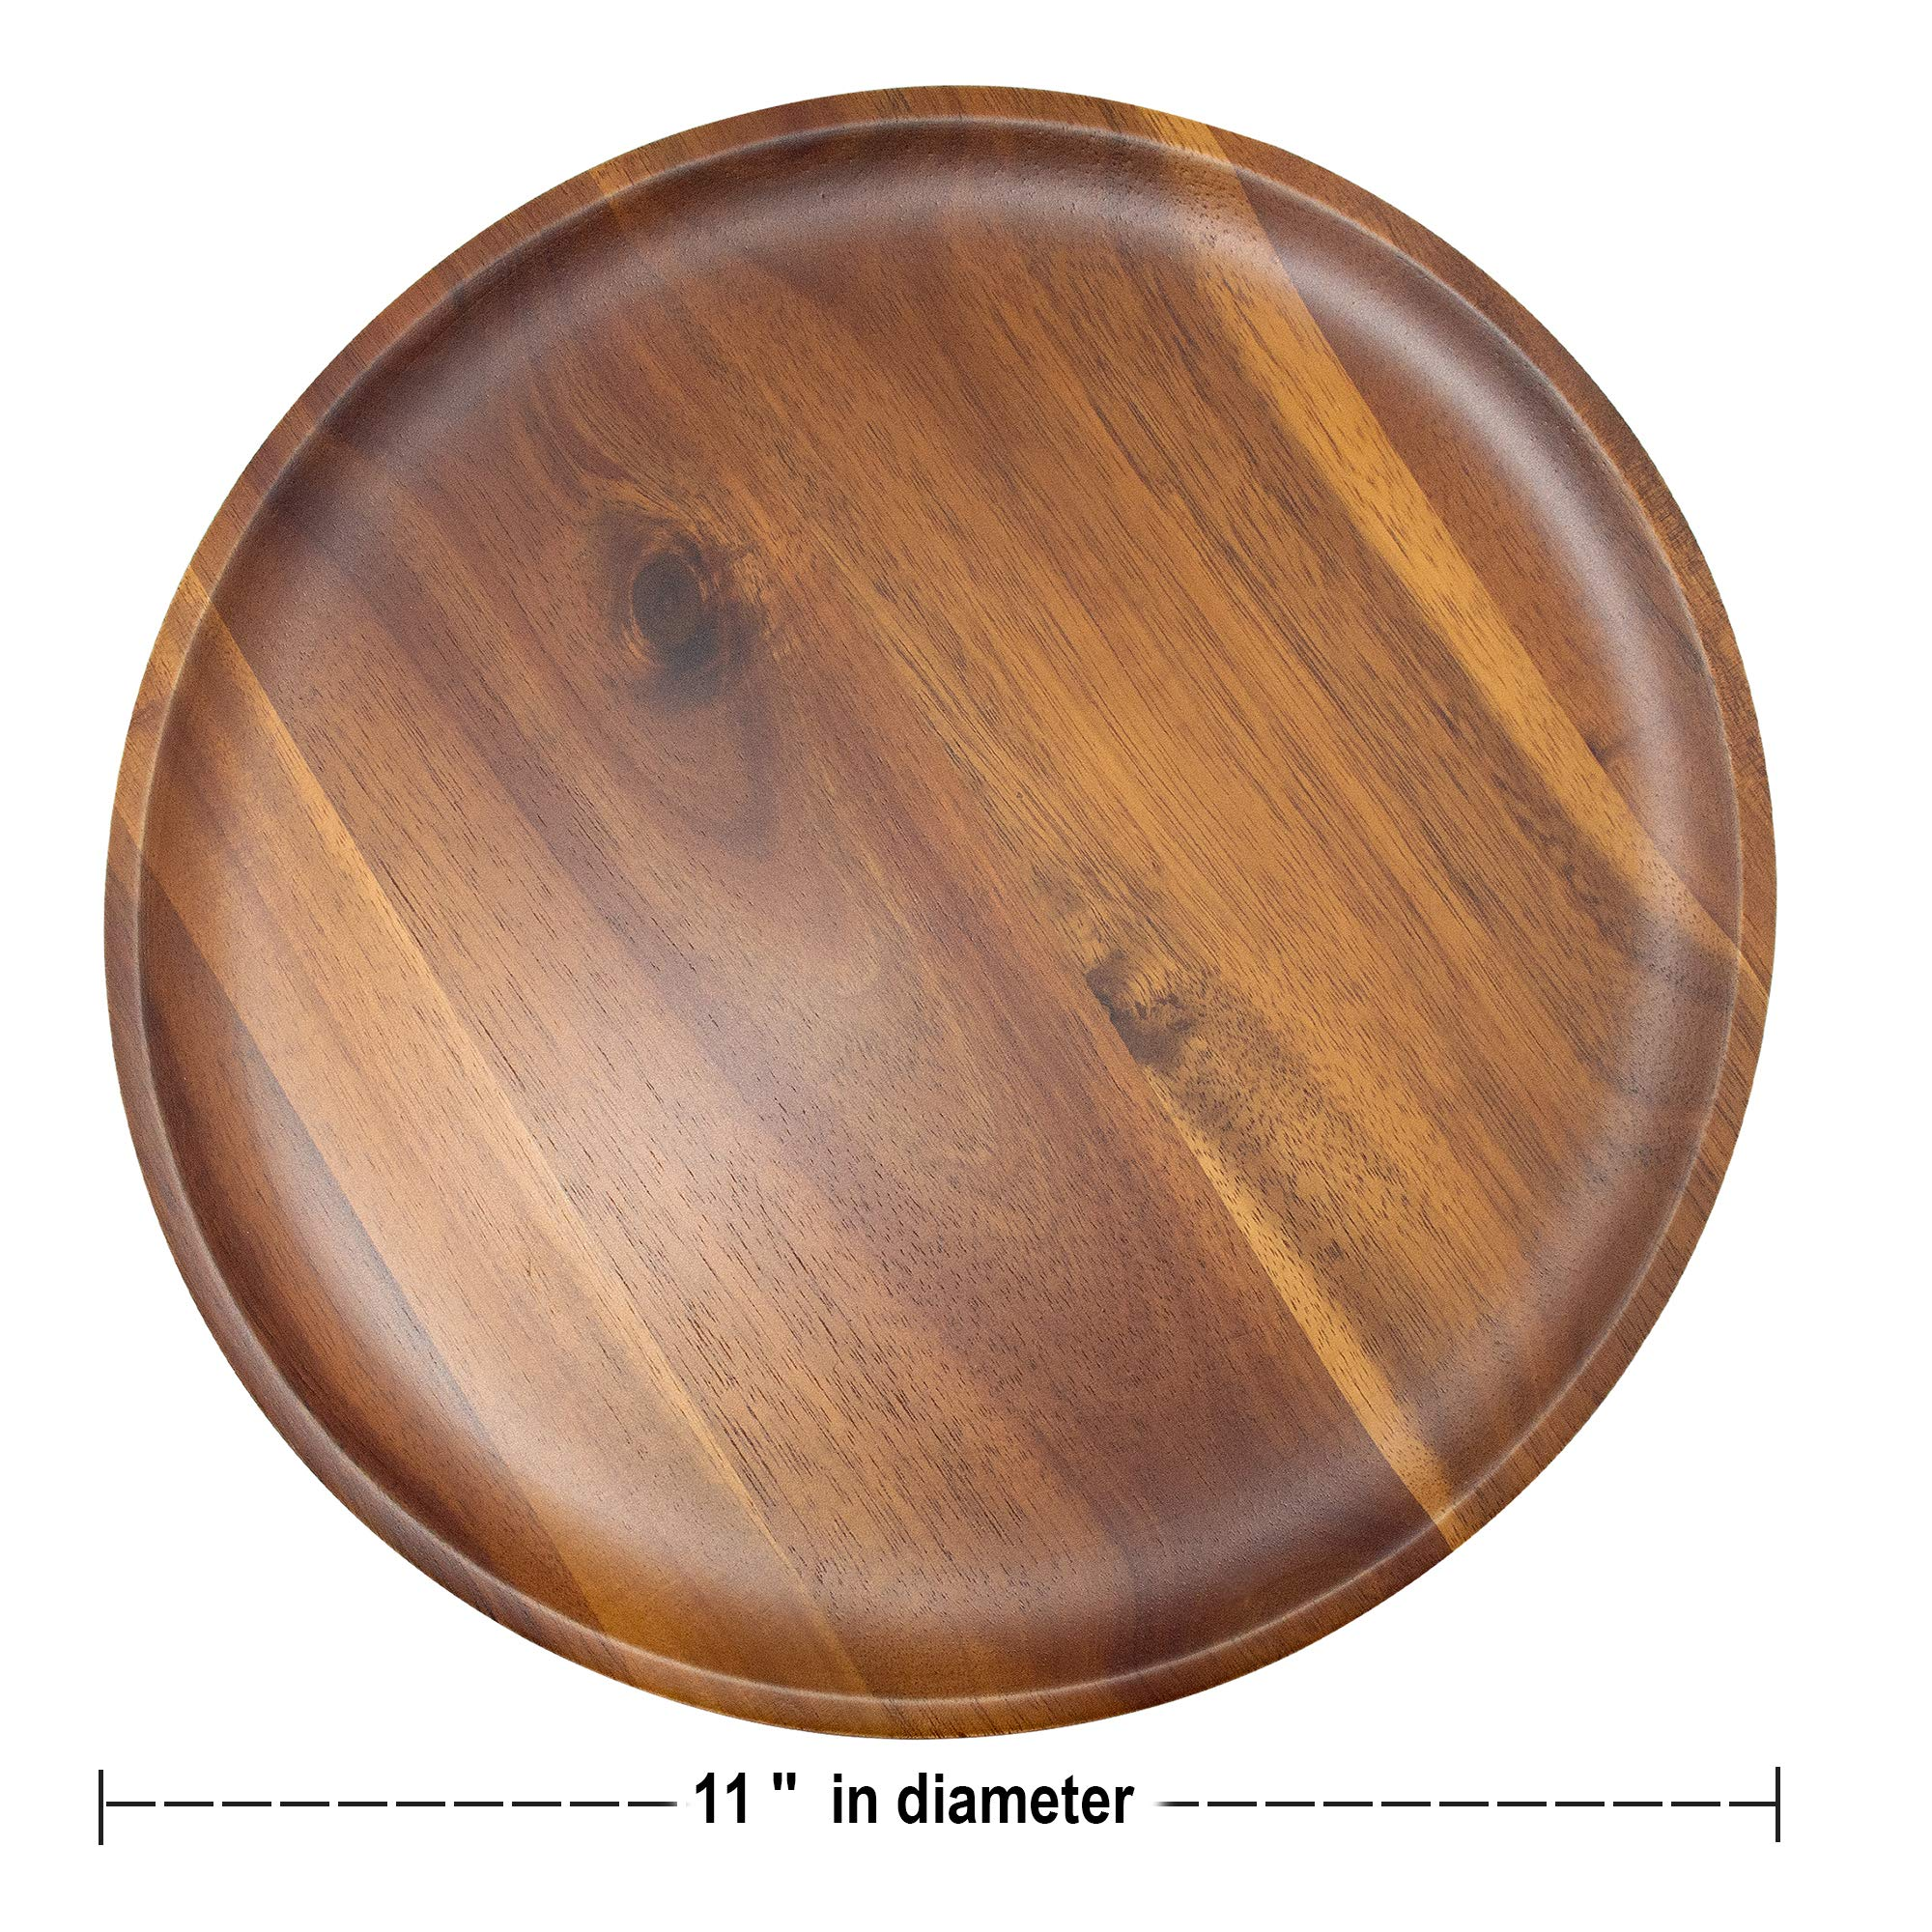 AIDEA Acacia Wood Food Serving Charger Plates - 11 inch Set of 4 Round Wooden Dishes Snack Plates by AIDEA (Image #2)